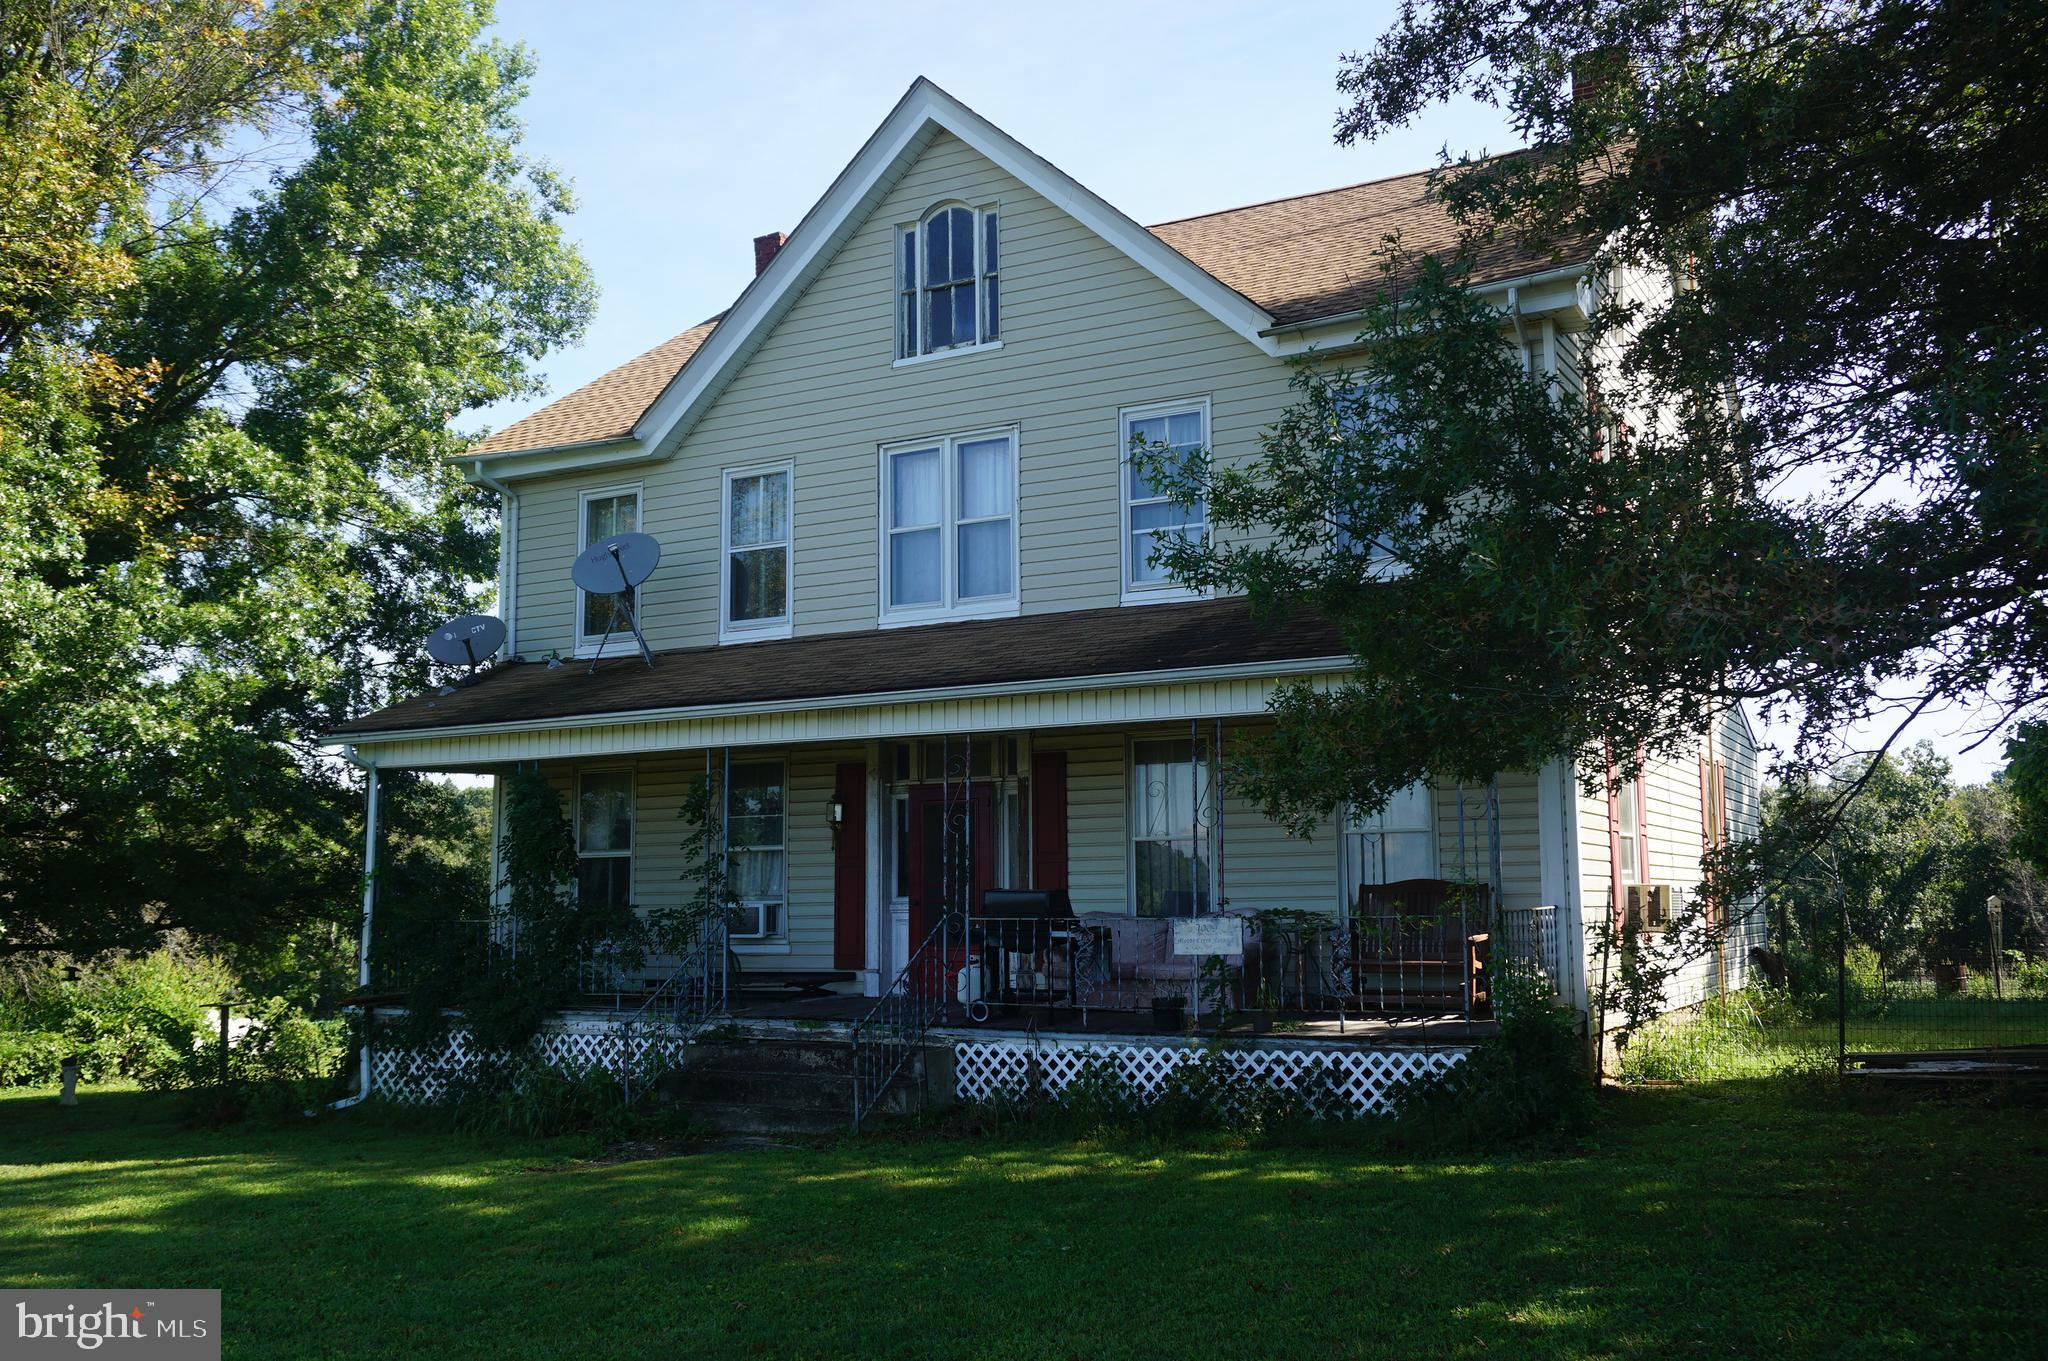 1009 MUDDY CREEK FORKS ROAD, AIRVILLE, PA 17302